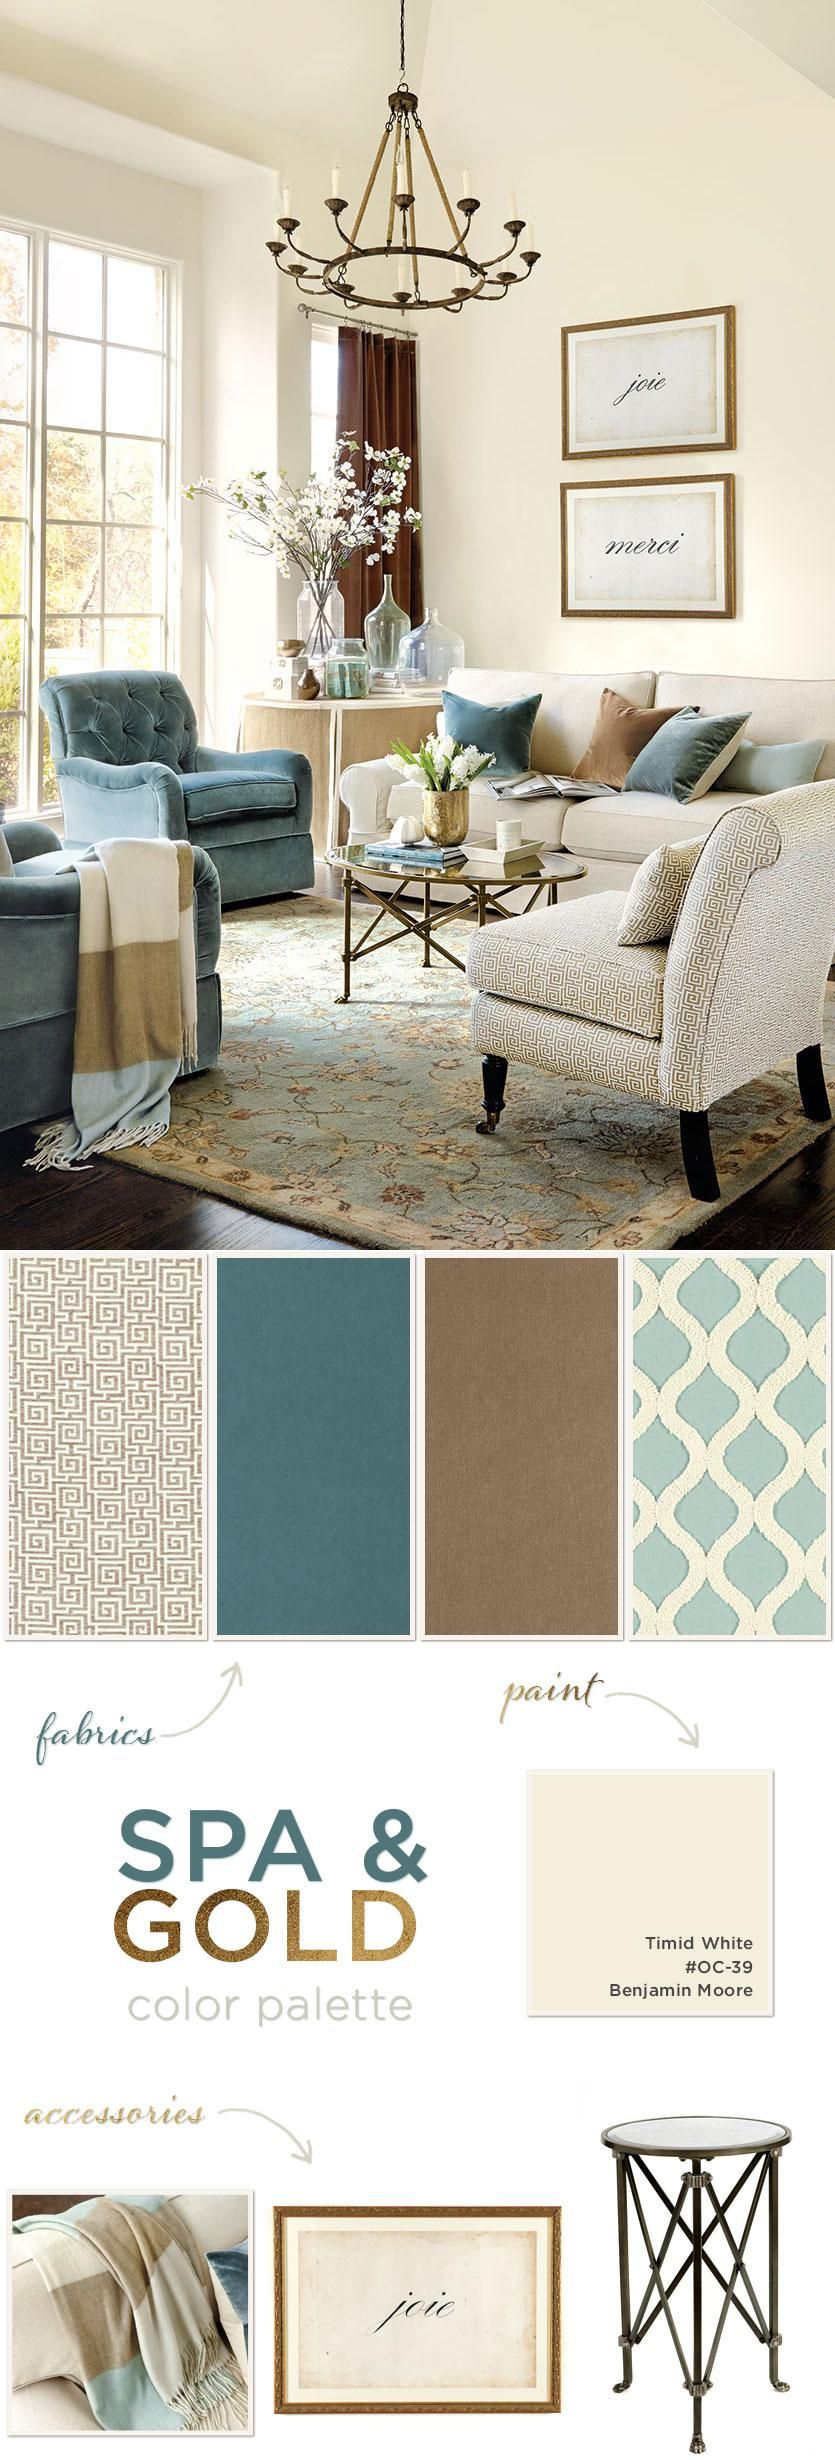 Inspired Color Palettes for Spring 2014 | Spa, Cozy and Formal